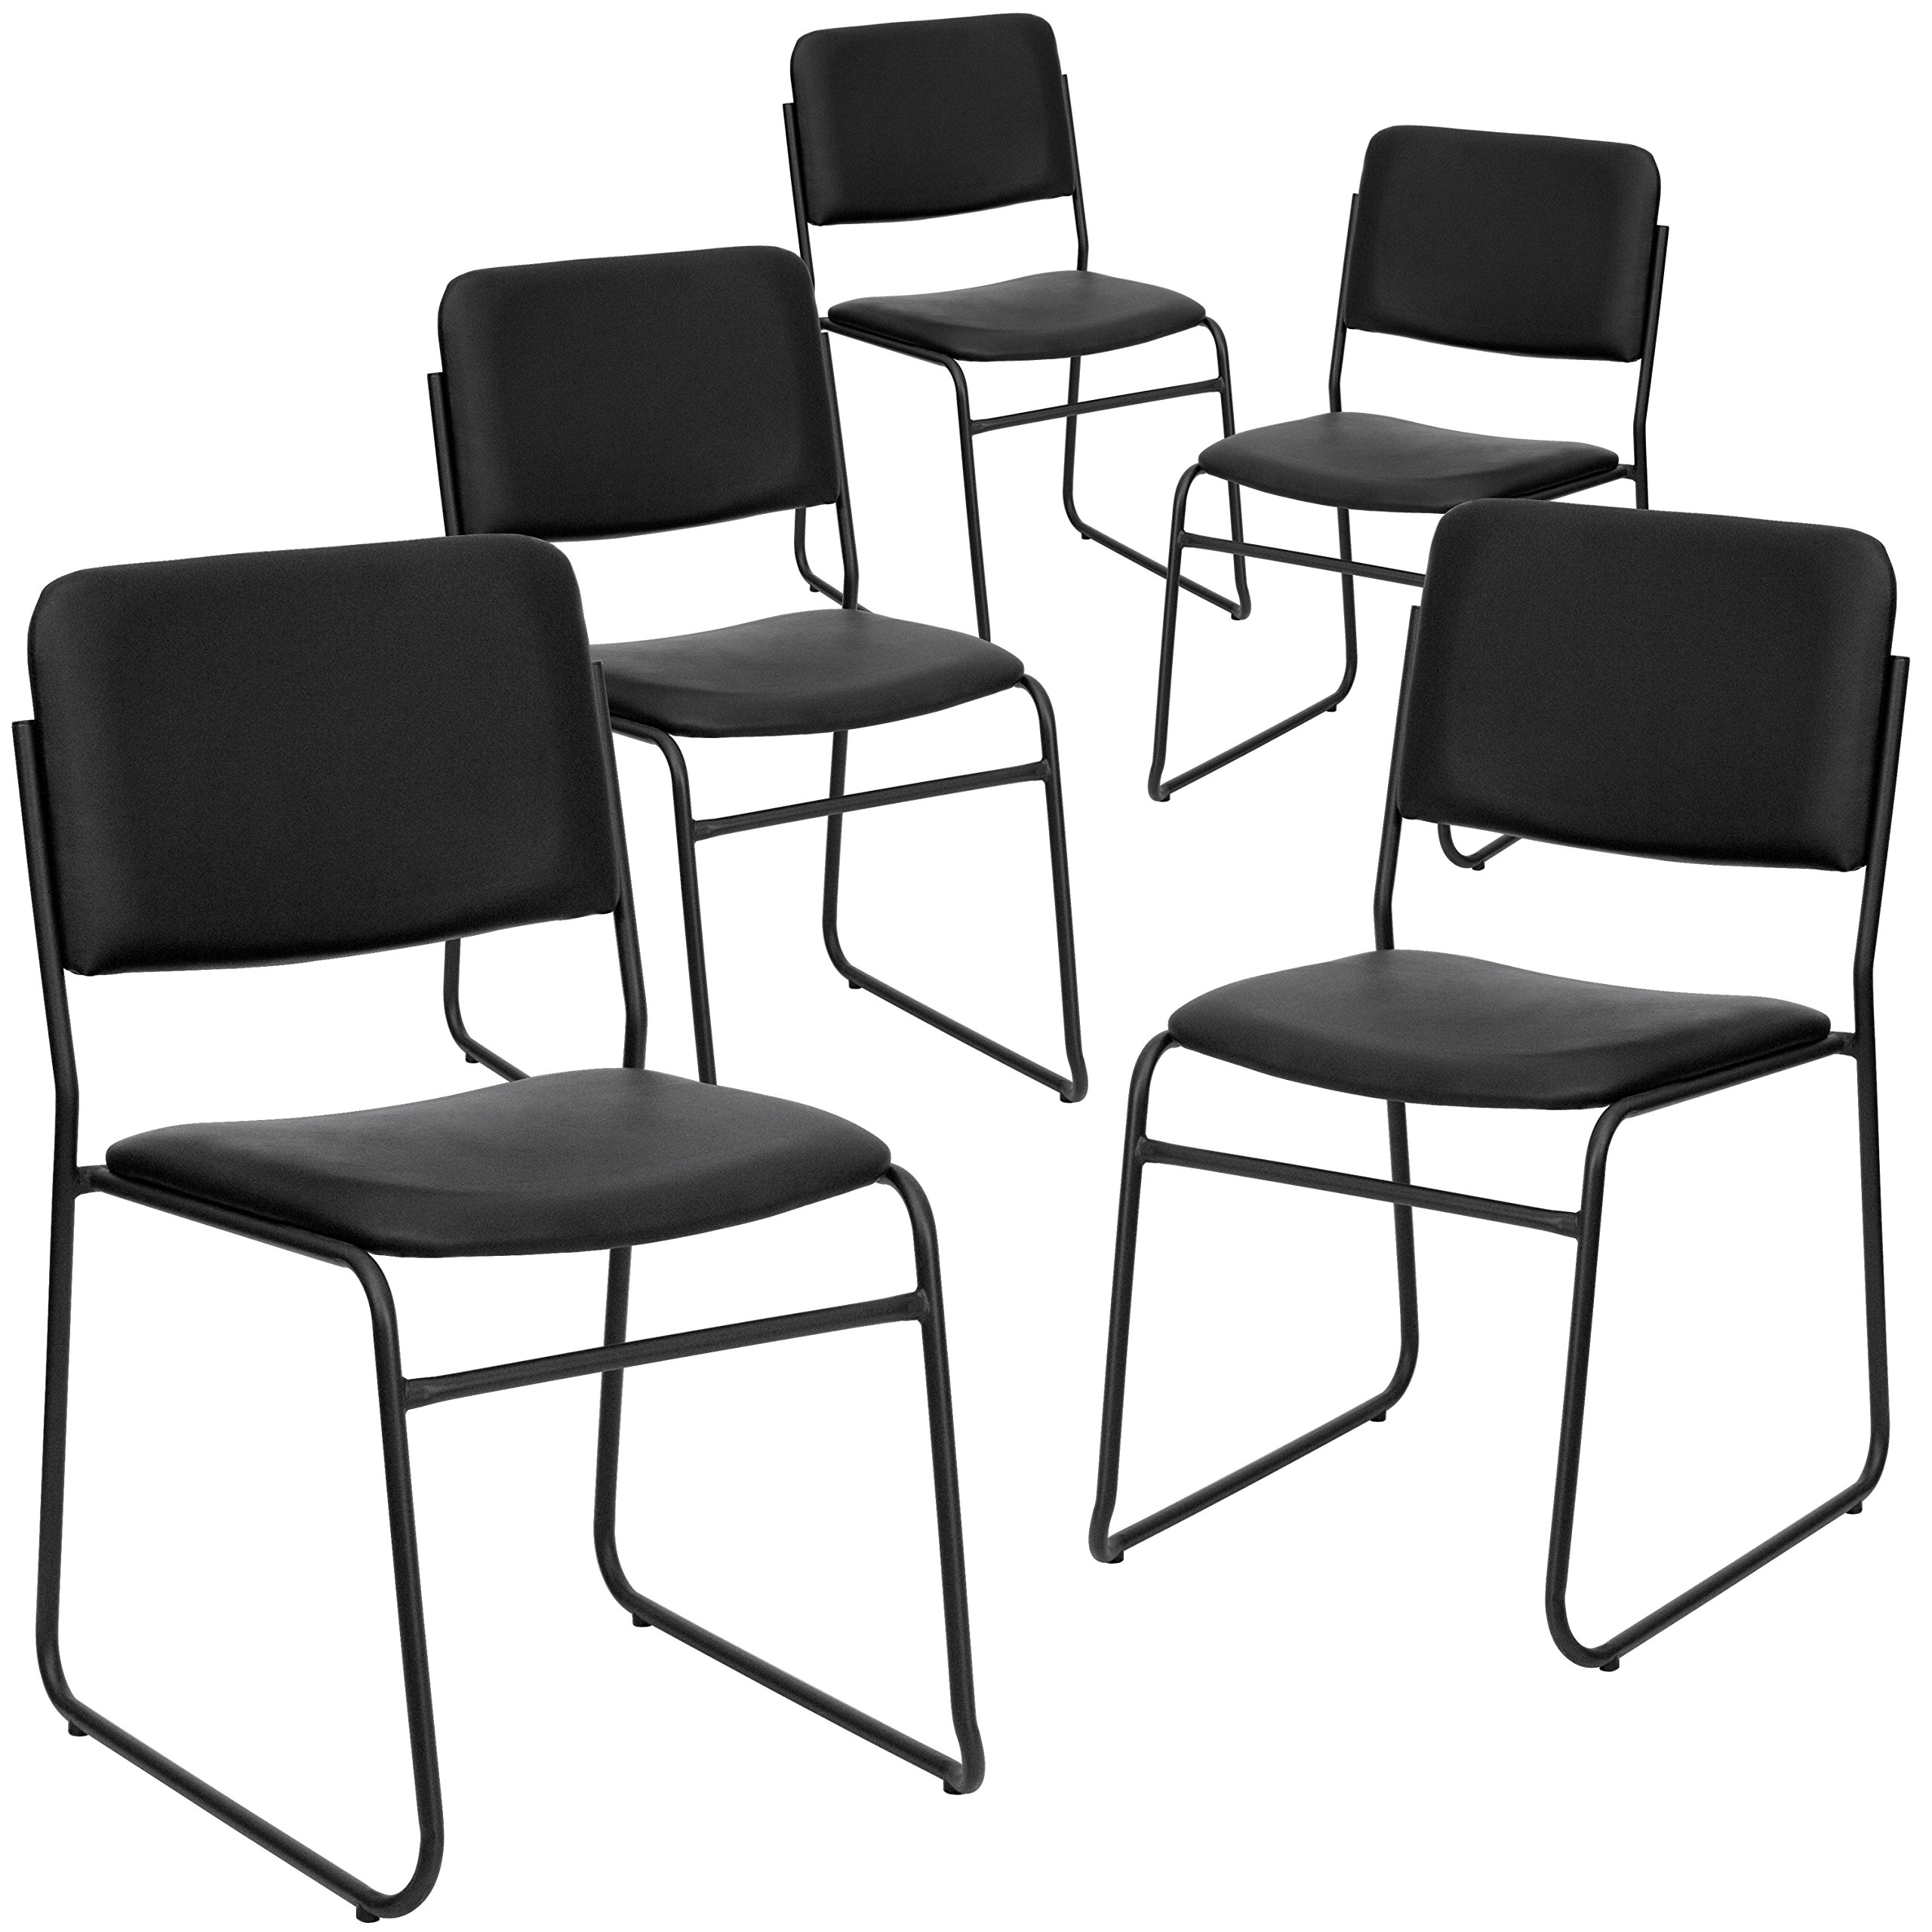 Flash Furniture 5 Pk. HERCULES Series 1000 lb. Capacity High Density Black Vinyl Stacking Chair with Sled Base by Flash Furniture